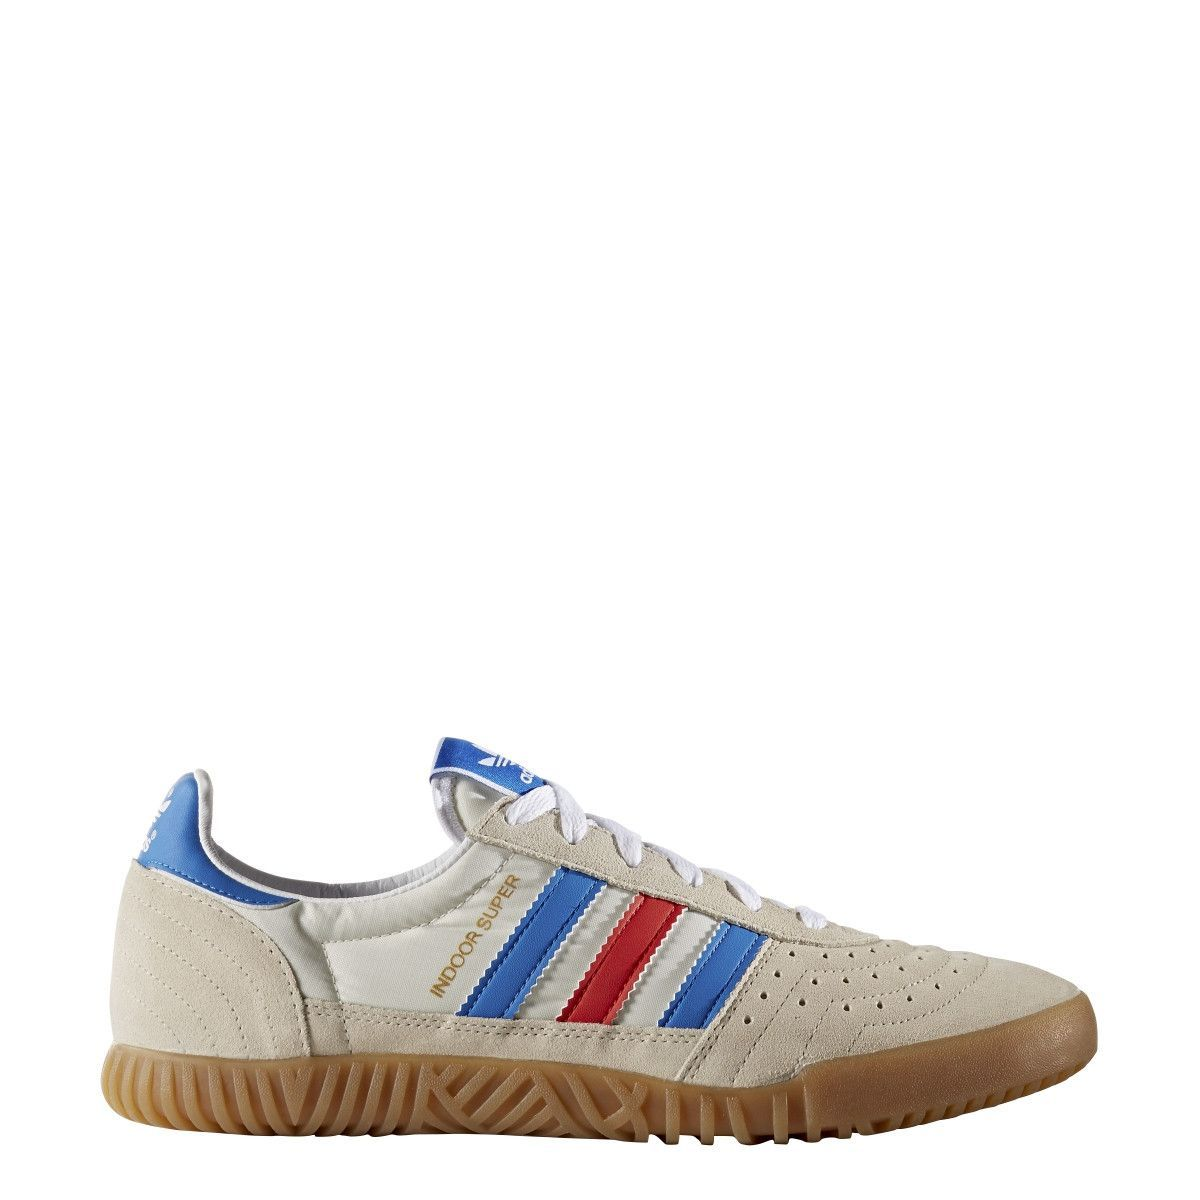 ADIDAS INDOOR SUPER SPZL MENS SNEAKERS